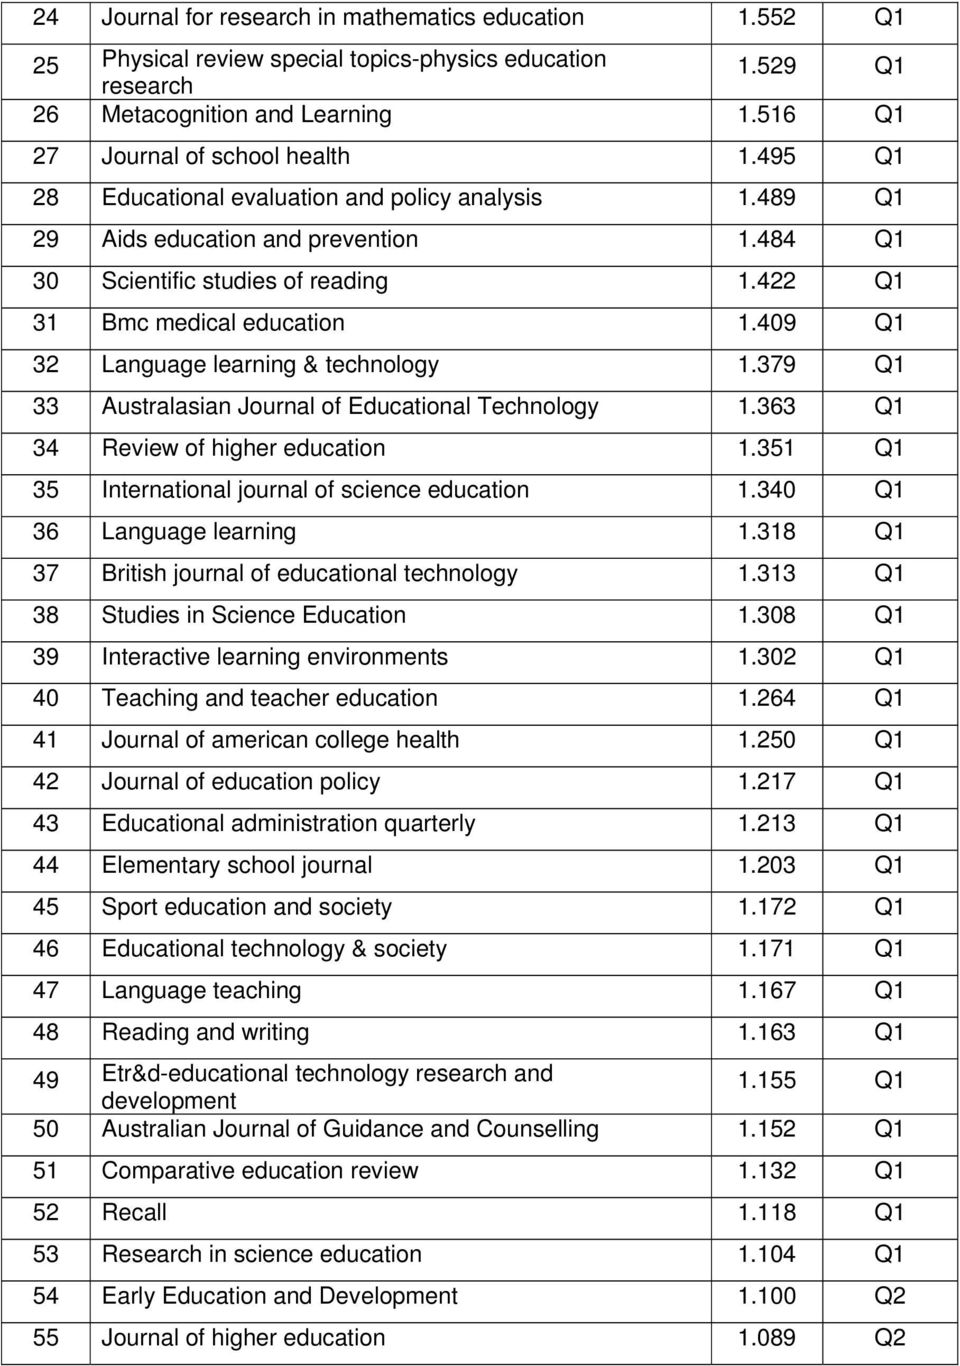 409 Q1 32 Language learning & technology 1.379 Q1 33 Australasian Journal of al Technology 1.363 Q1 34 Review of higher education 1.351 Q1 35 International journal of science education 1.